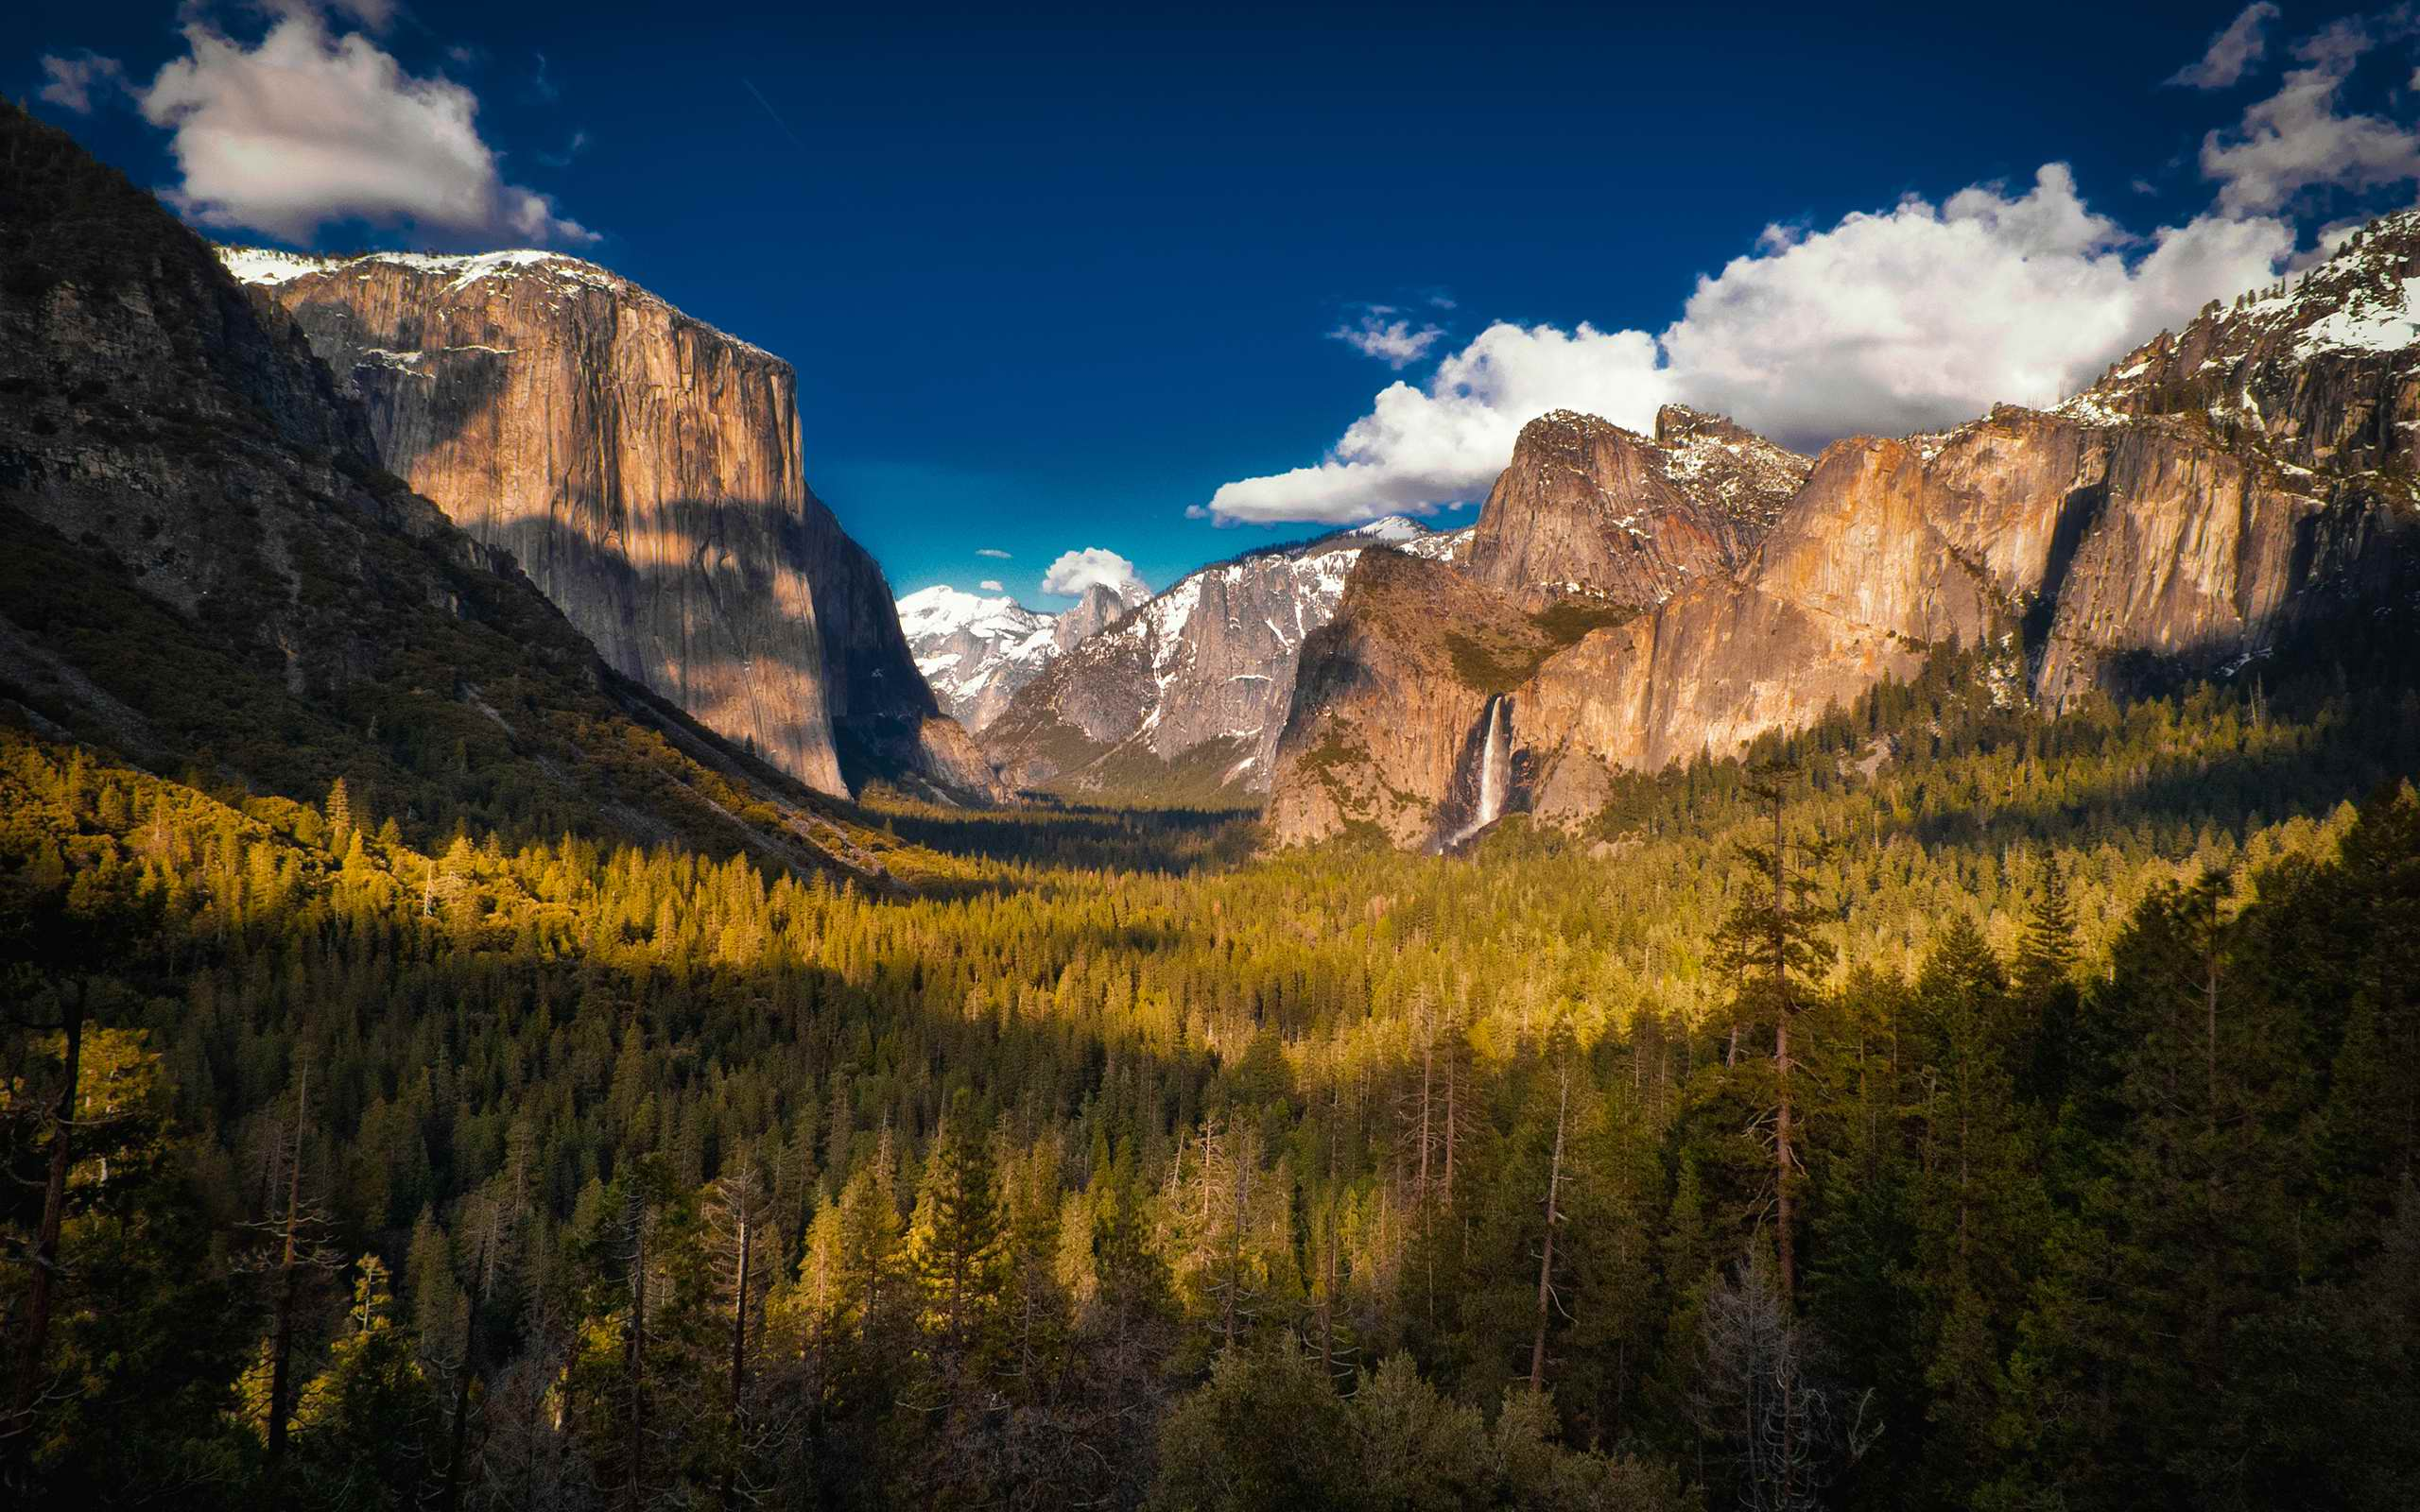 Yosemite wallpapers wallpaper cave - Yosemite national park hd wallpaper ...